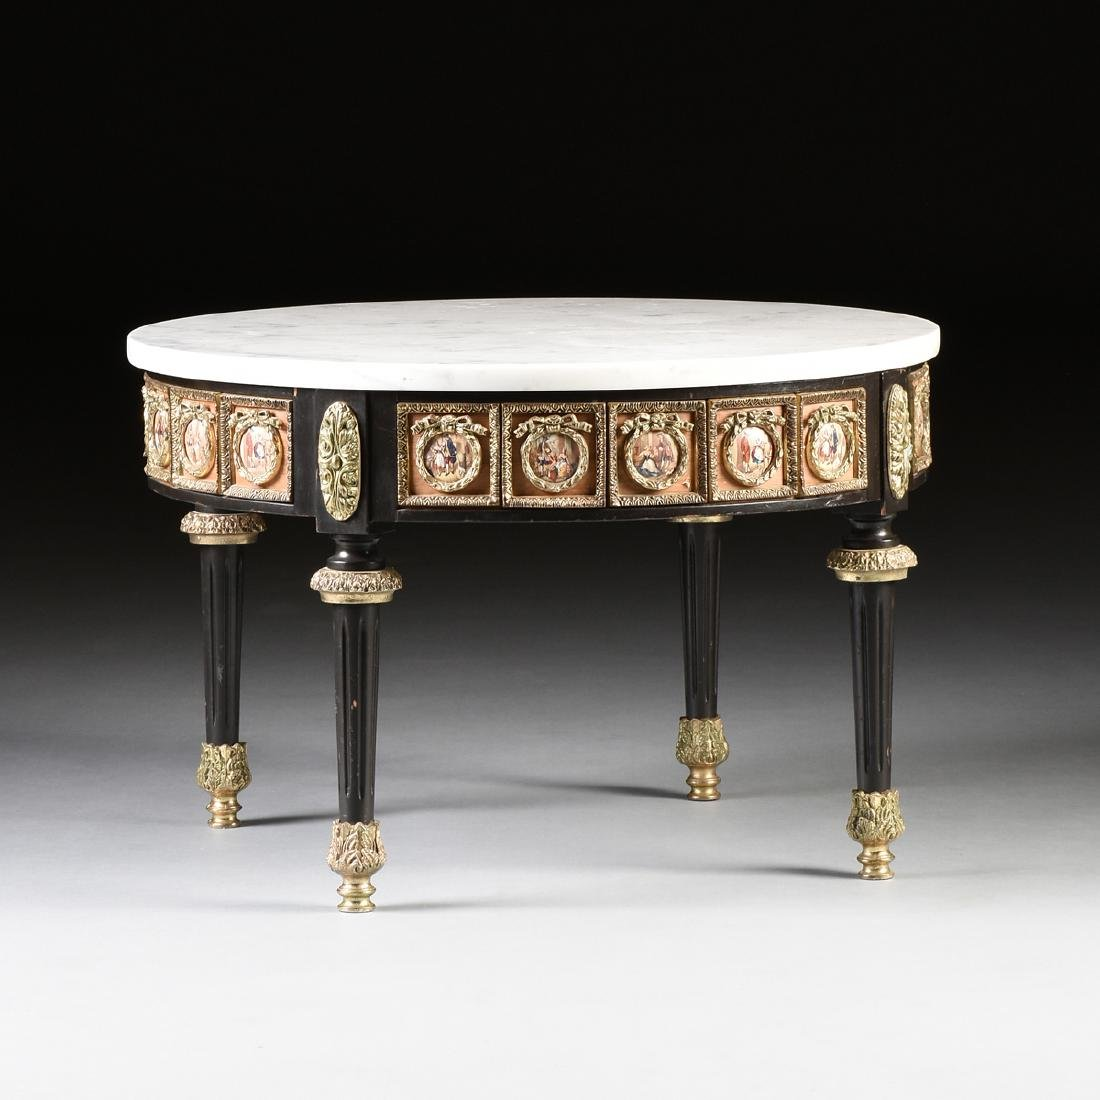 A LOUIS XVI STYLE GILT BRONZE AND TRANSFER PRINTED